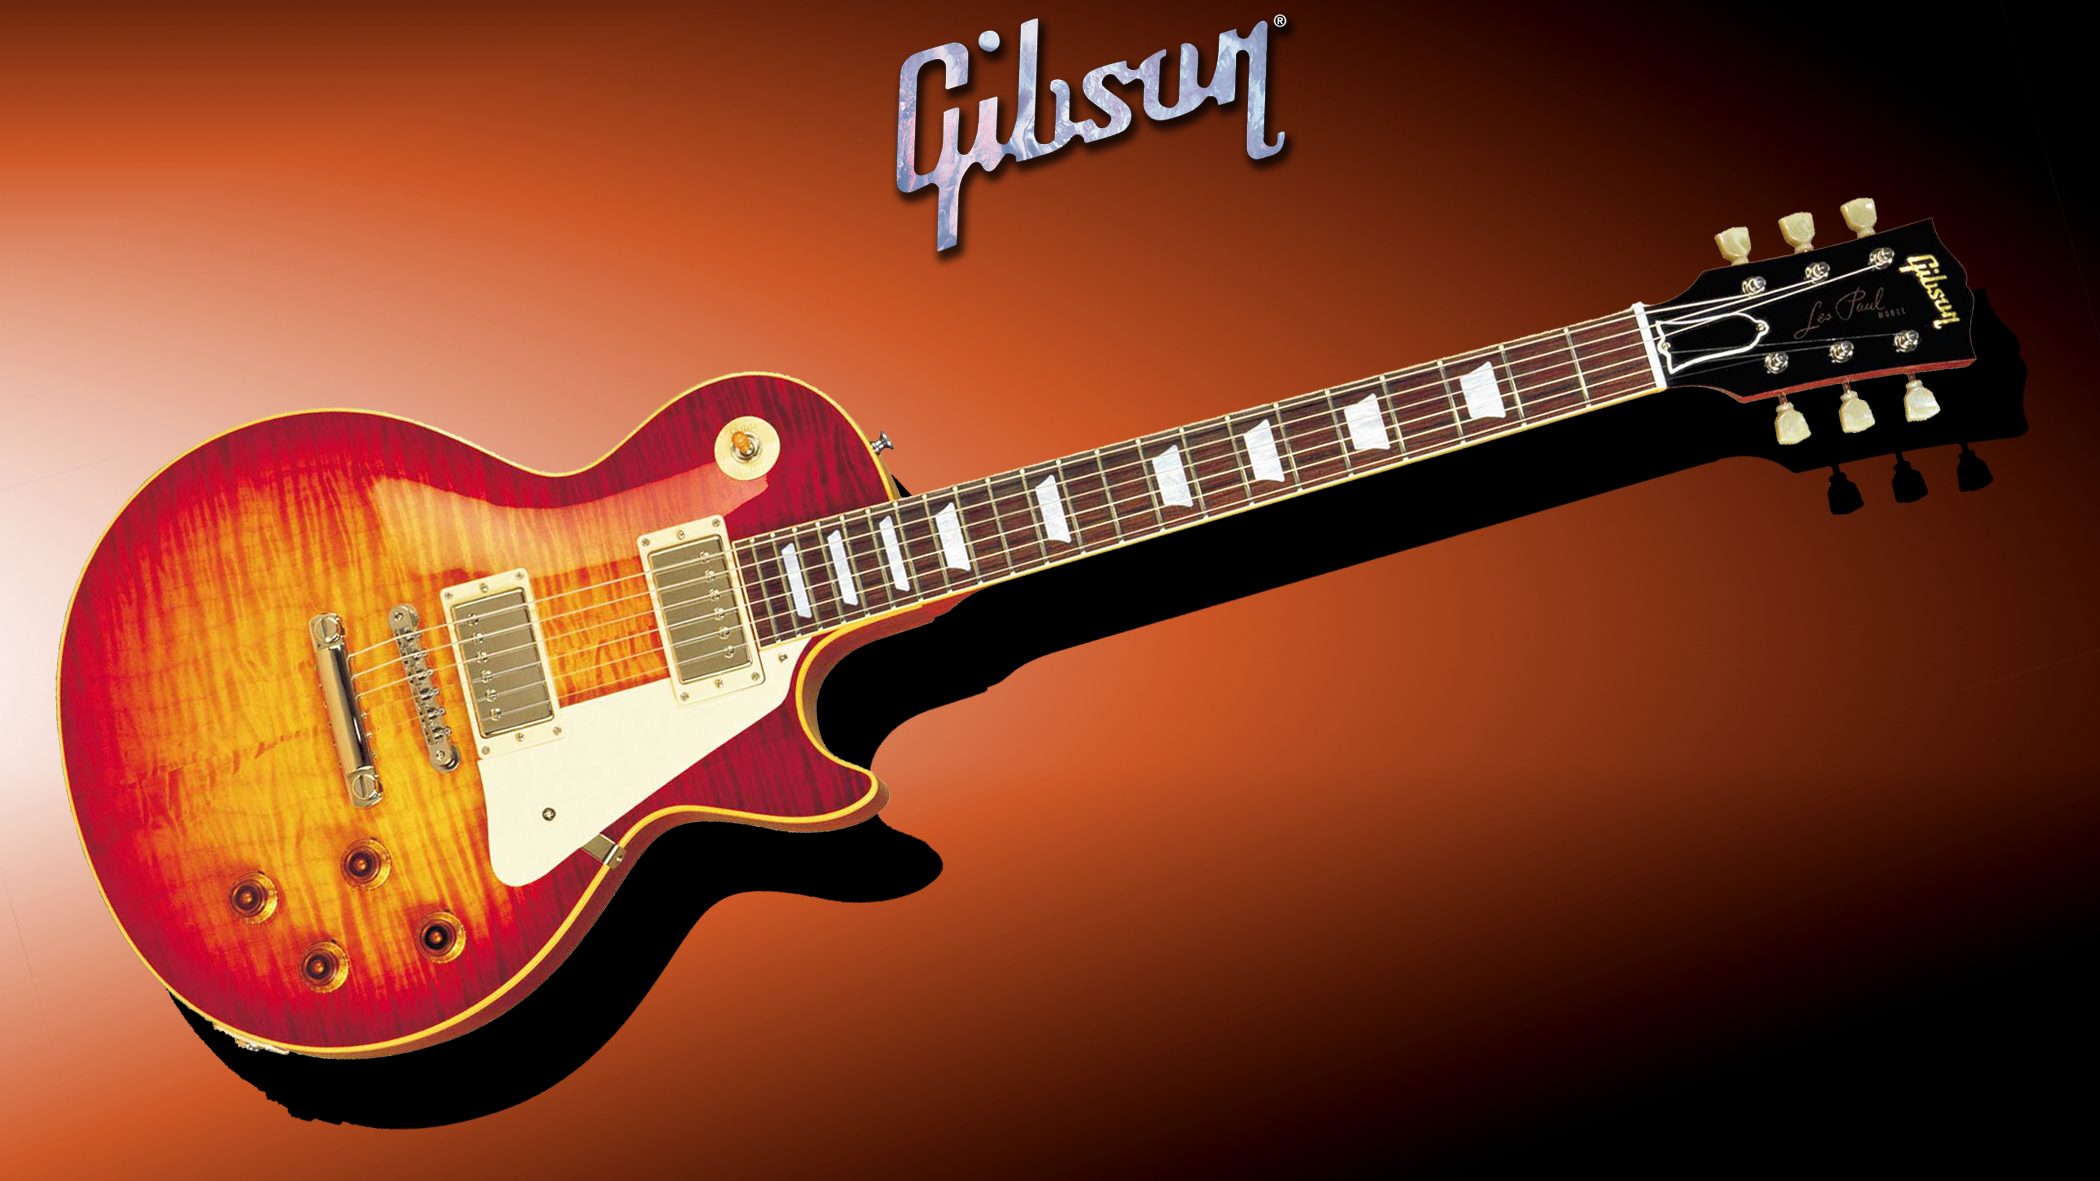 Gibson Les Paul Widescreen by sackrilige on DeviantArt